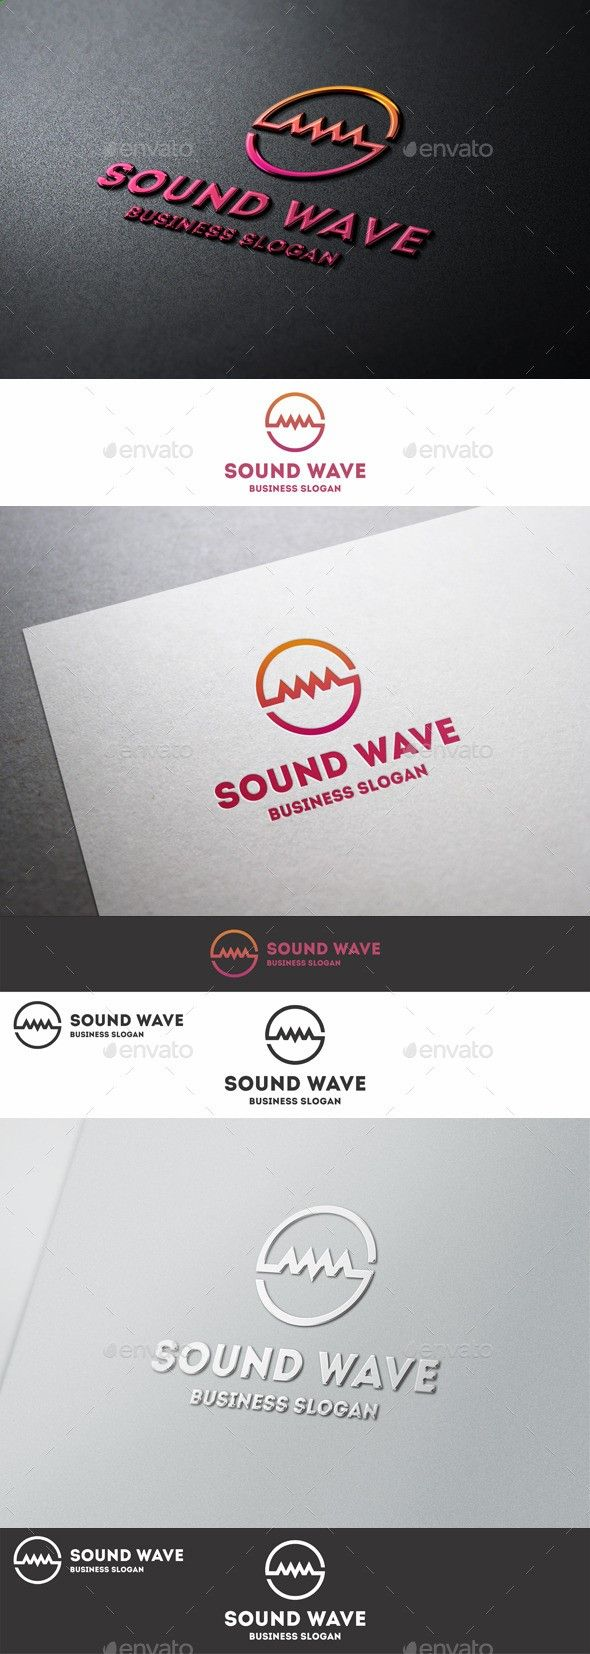 Sound Wave Logo S Letter - Digital Wave Studio Logo – An excellent logo template highly suitable for music production and entertainment businesses. Is a logo that can be used by multi media developers, radio station, audio designers, design agencies, web designers, graphic designers ; Suitable for companies engaged in music, media, record companies, music studios, music stores, entertainment, event organizer, and other related companies. etc.http://graphicriver.net/item/sound-wave-logo...